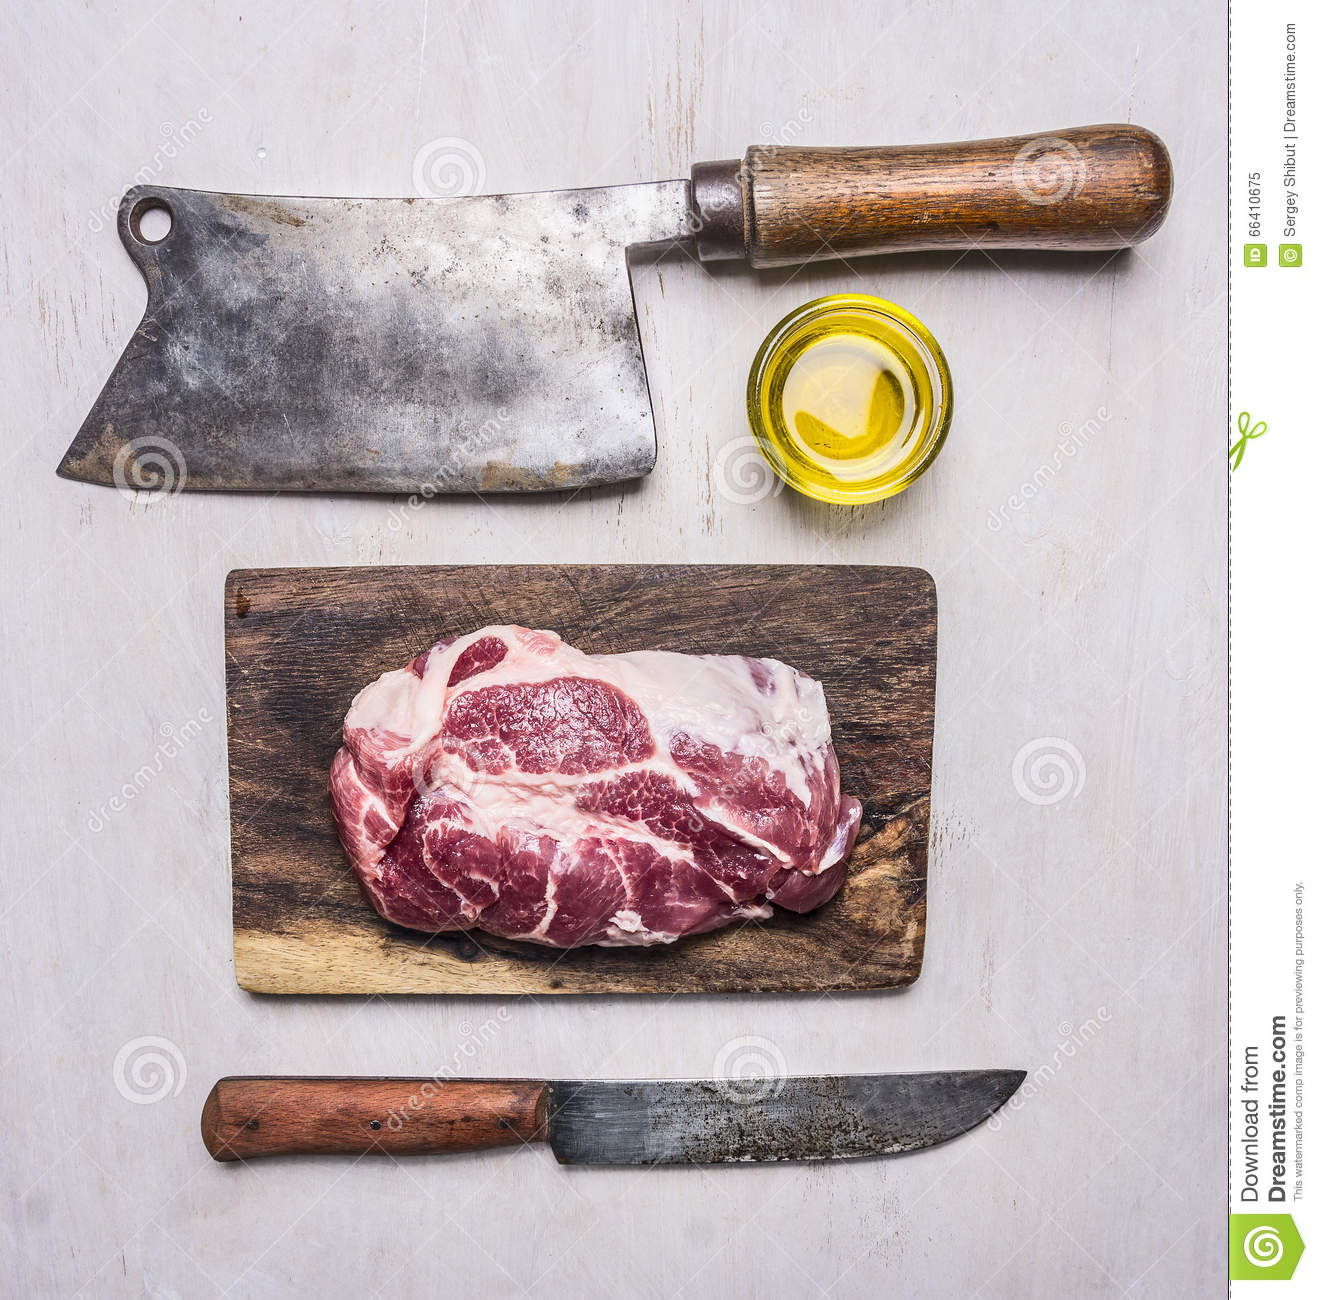 delicious raw pork steak on a cutting board with a meat cleaver and a knife for meat on wooden. Black Bedroom Furniture Sets. Home Design Ideas